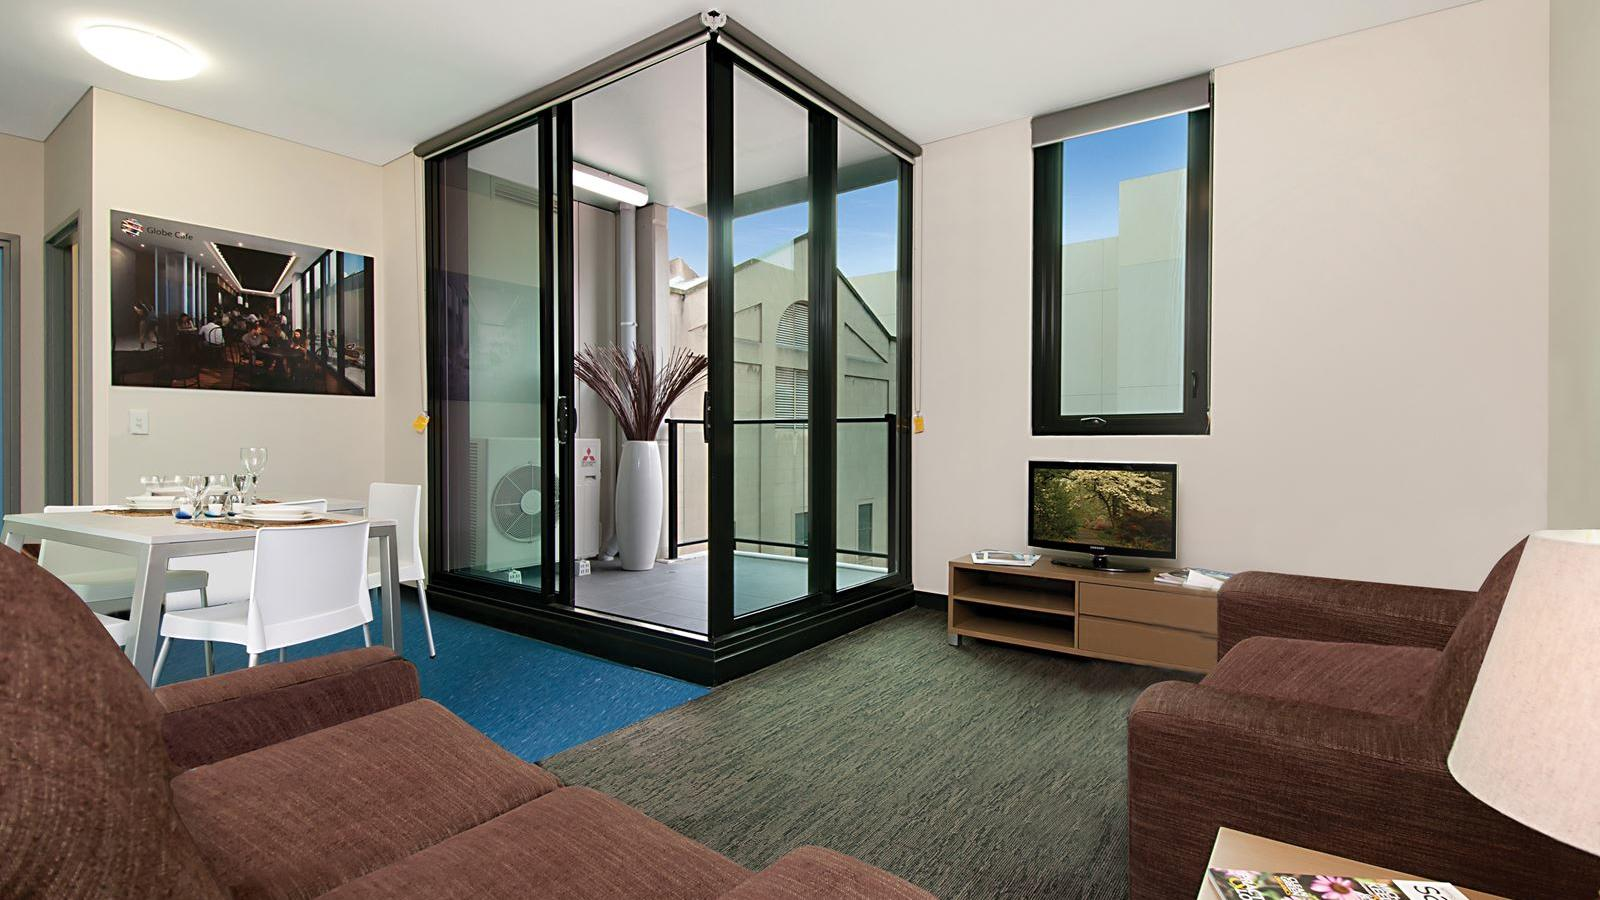 Student Living Edge Apartments – East End lounge and balcony